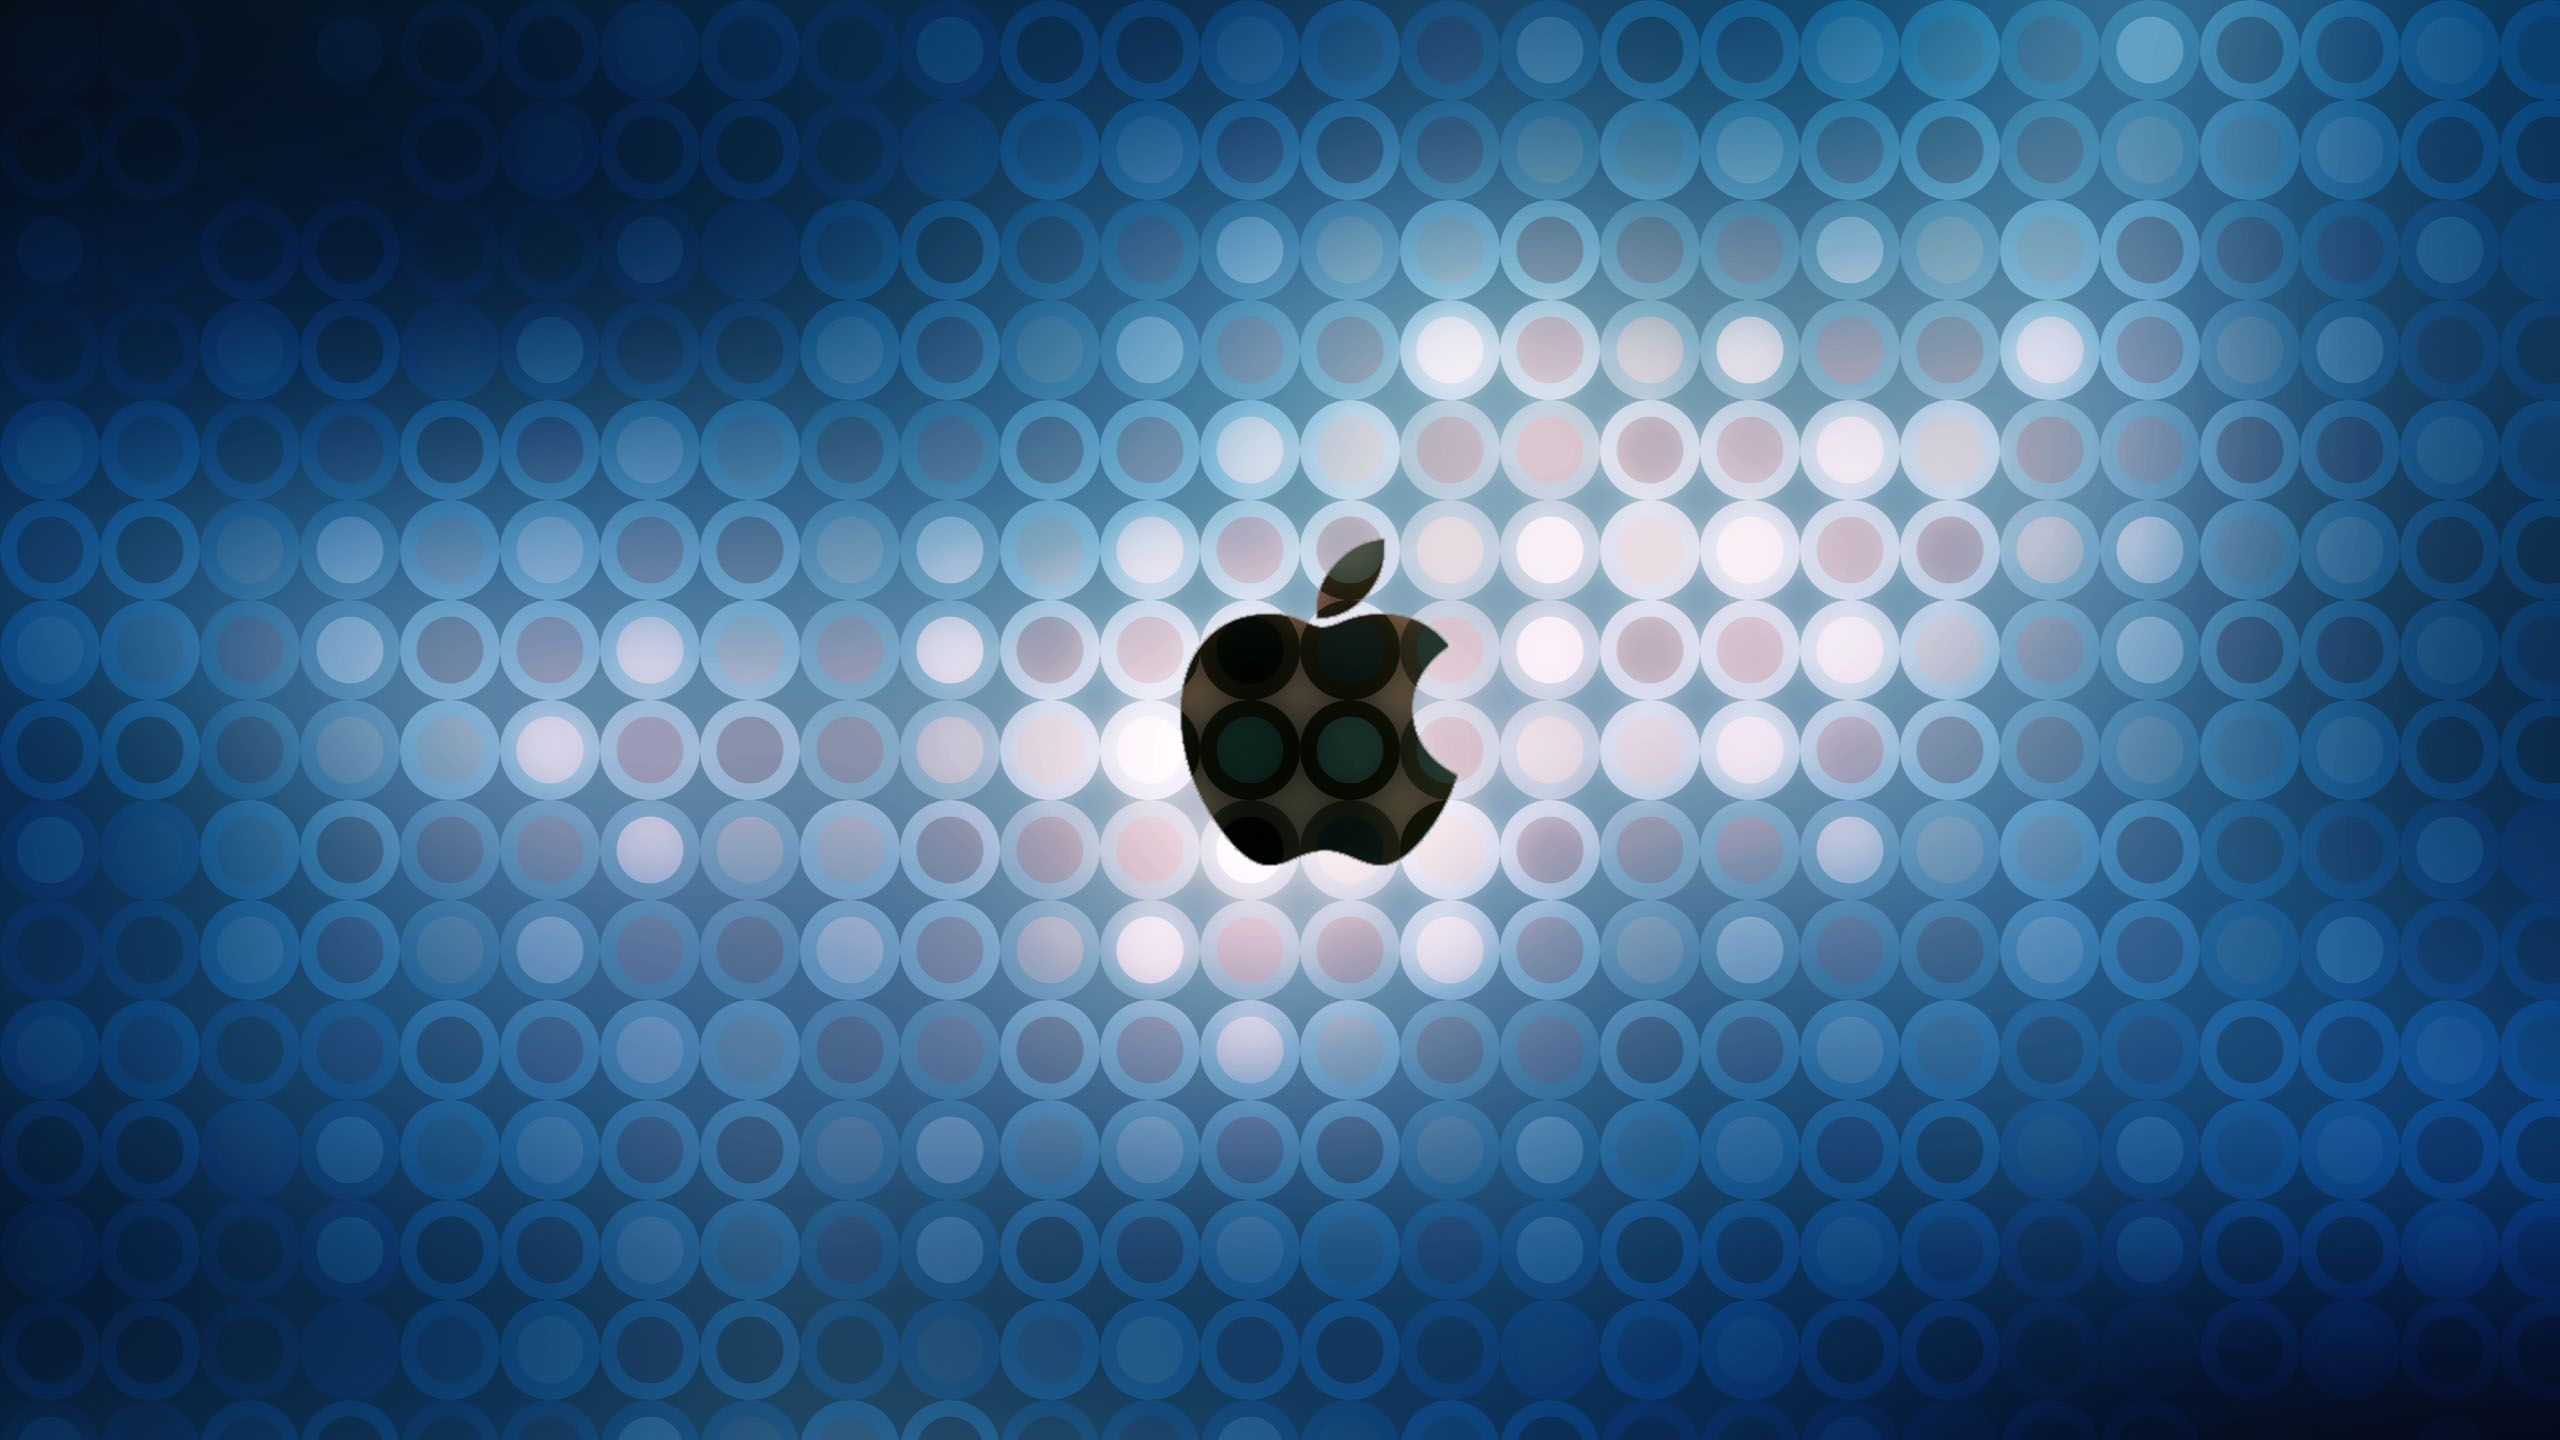 Mac Backgrounds Wallpapers 2560x1440